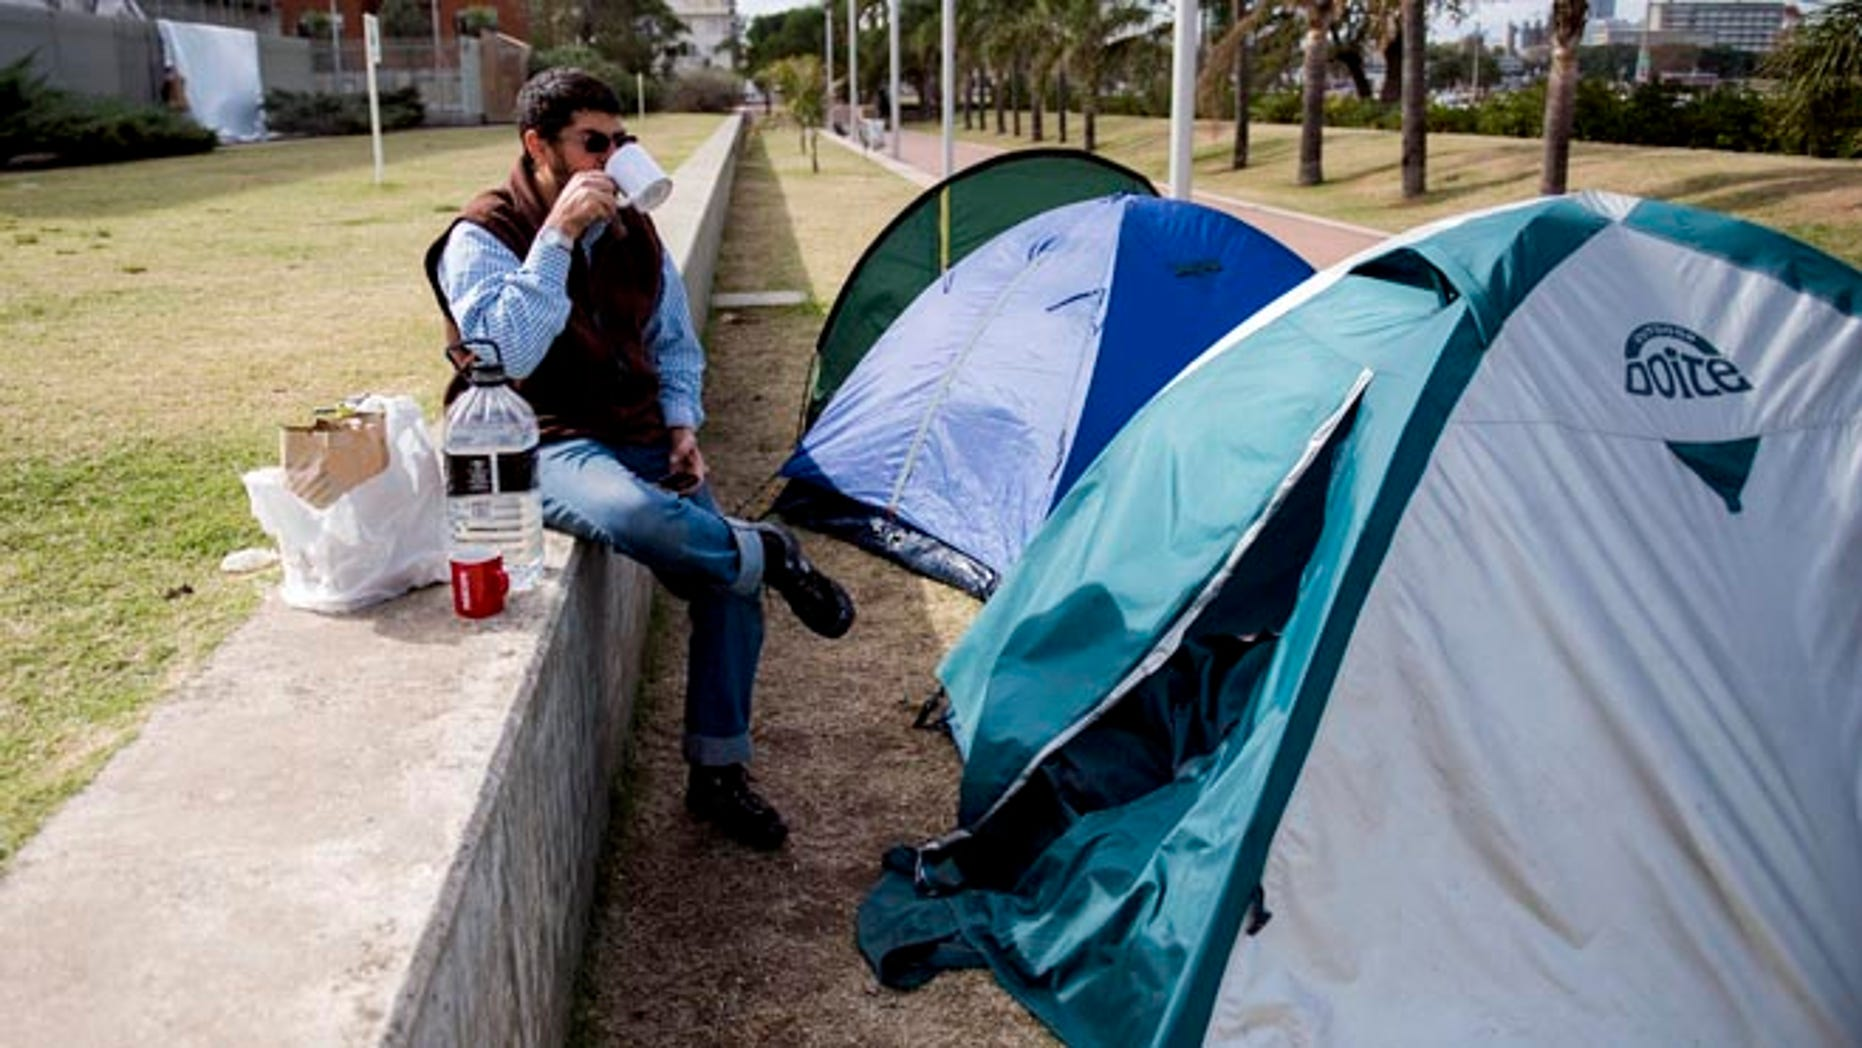 FILE - In this May 6, 2015 file photo, Omar Abdelhadi Faraj drinks tea in front of his tent outside the U.S. embassy as a form of protest in Montevideo, Uruguay. Faraj's attorney Mauricio Pigola said Sunday, Jan. 24, 2016 that his client was released after a judge found insufficient evidence against him in a domestic violence case. Faraj is a Syrian who arrived to Uruguay in December 2014 with five other ex-prisoners once held with terror suspects at the U.S. military base in Guantanamo, Cuba. (AP Photo/Matilde Campodonico, File)